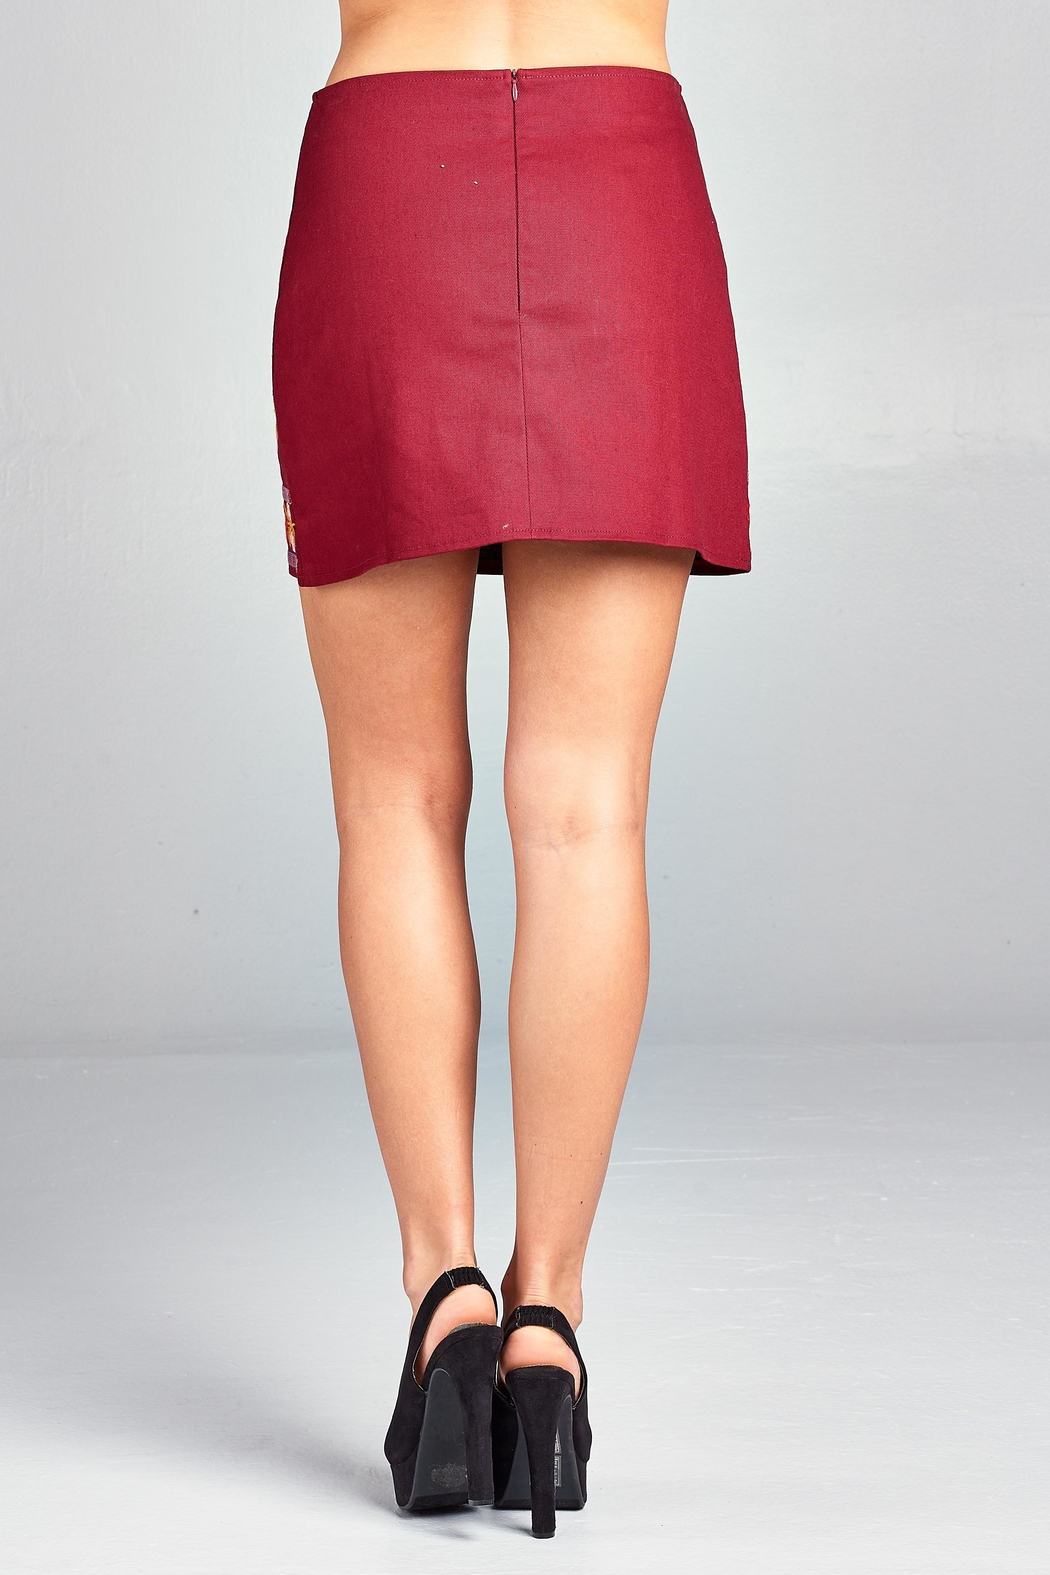 Velzera Wine Floral-Embroidered Mini-Skirt - Side Cropped Image